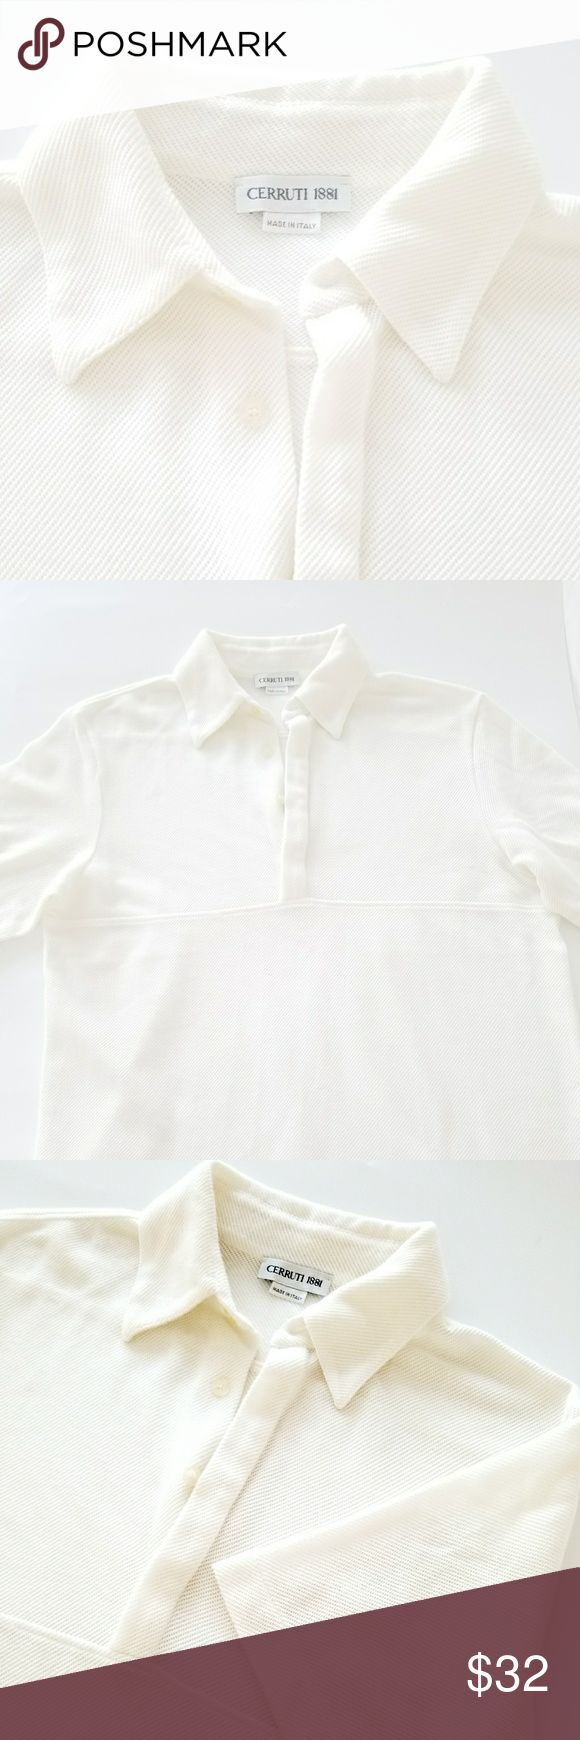 """CERRUTI 1881 Knit Men's Polo Authentic CERRUTI 1881 men's polo knit structure in ivory color, made in Italy, gently used, can be wear with jeans or jacket.  100% cotton  missing size label,  measurements are length 25"""" chest 40"""" , a little bit see true. CERRUTI 1881 Tops"""